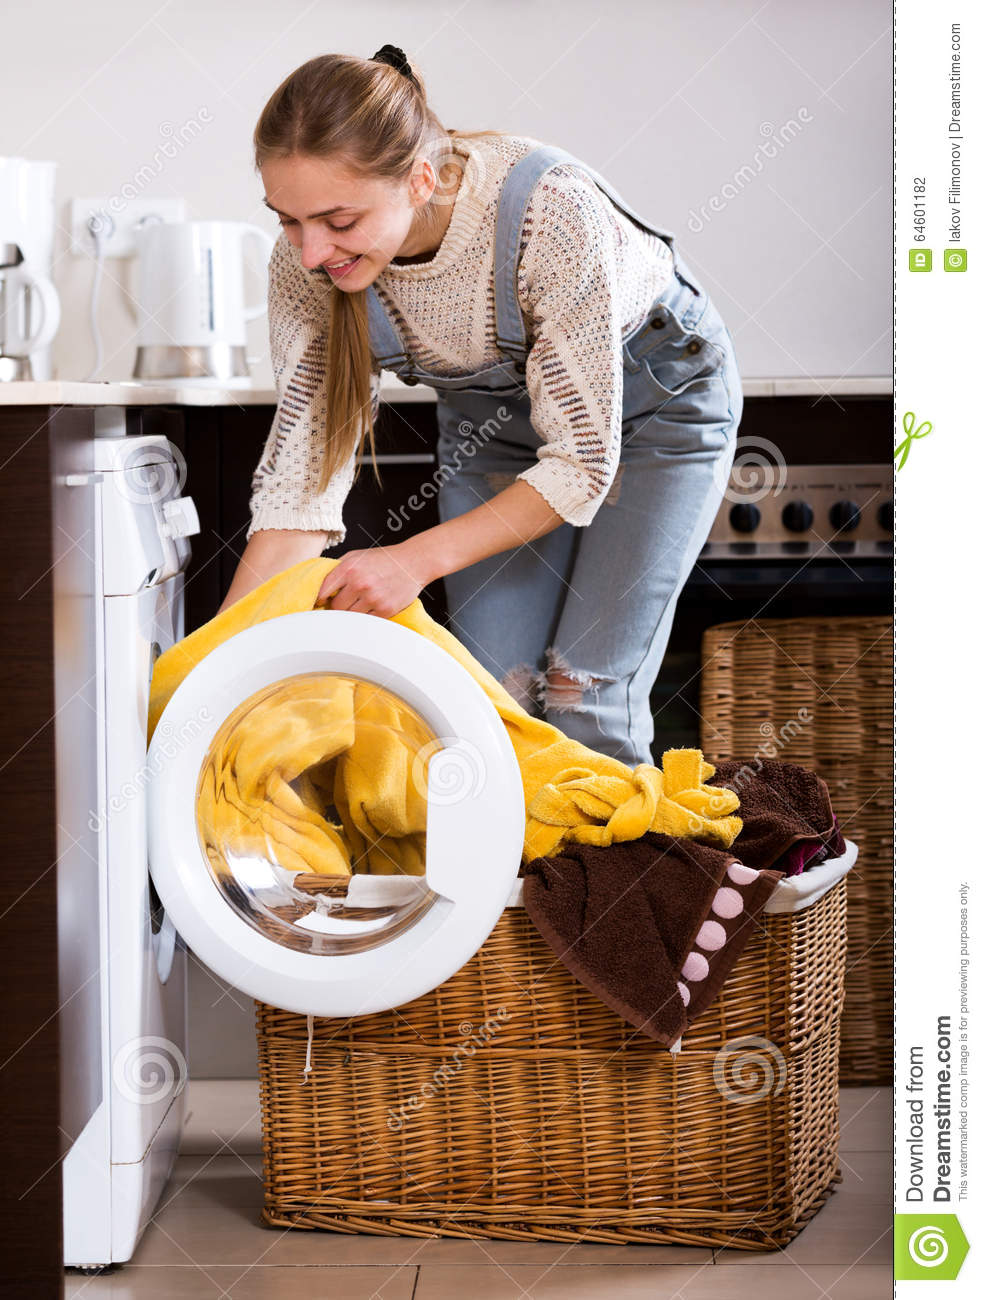 taking clothes out washing machine stock photo